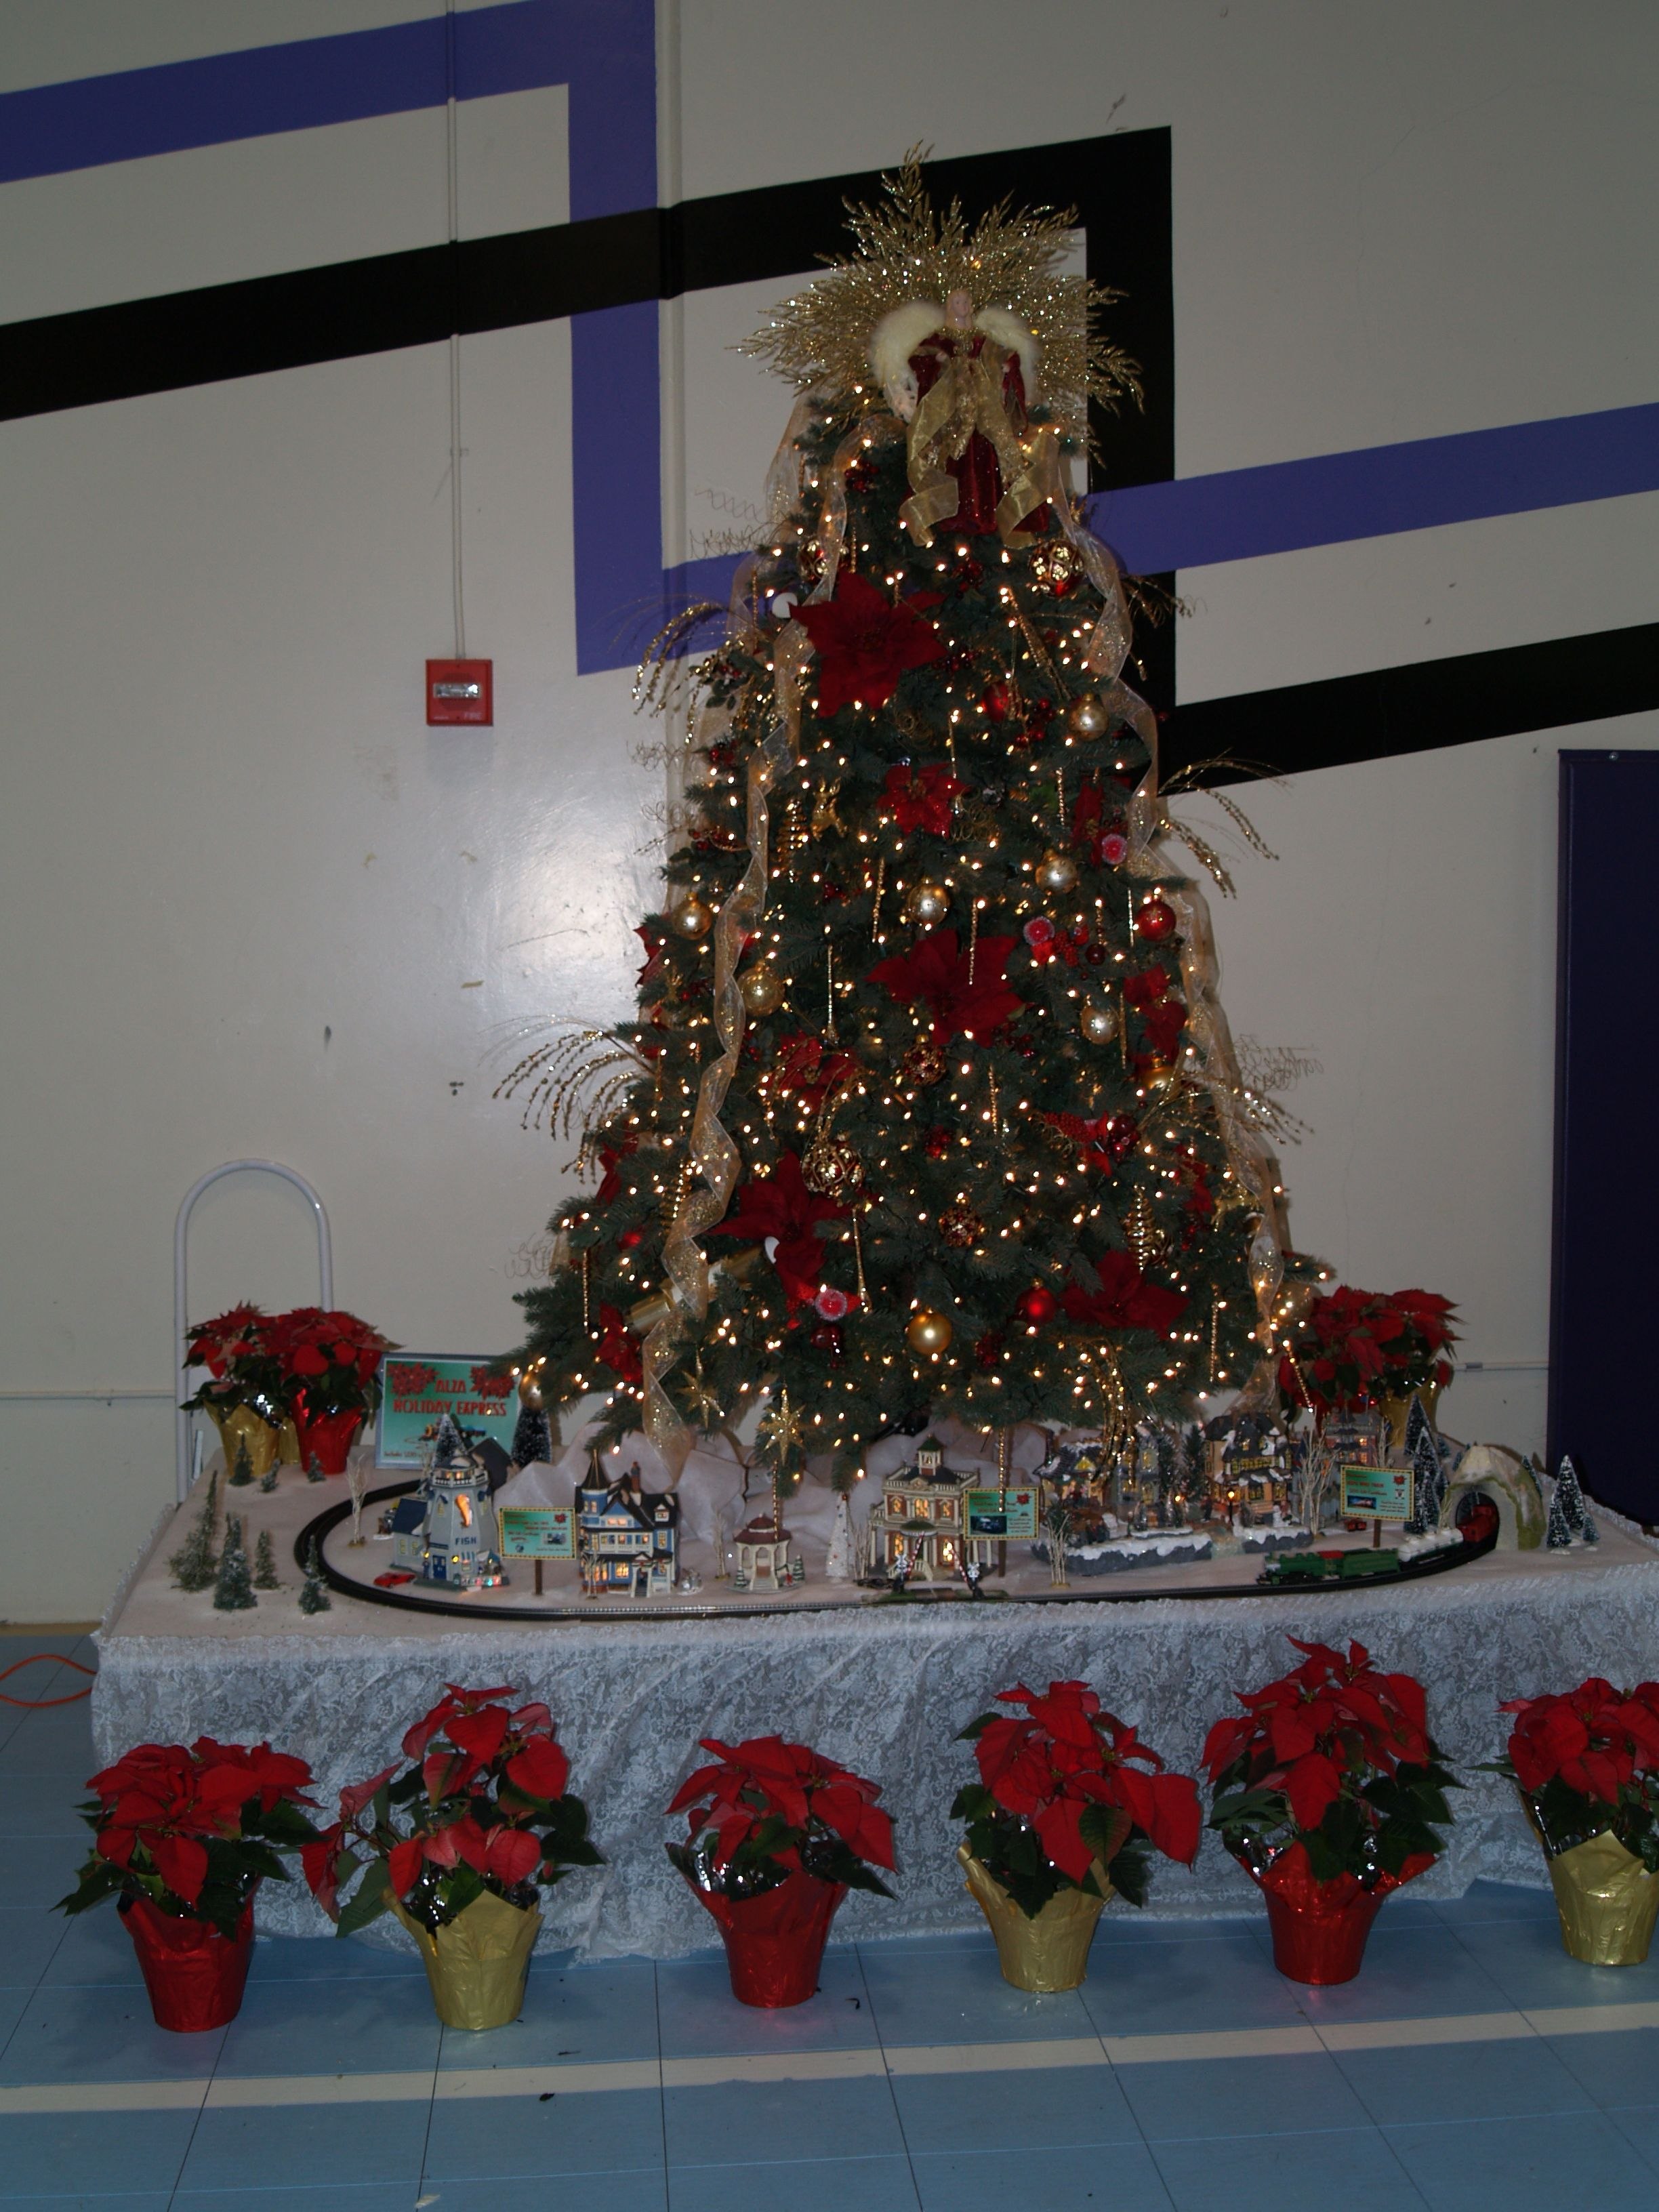 2006 Very first gala tree - got us hooked